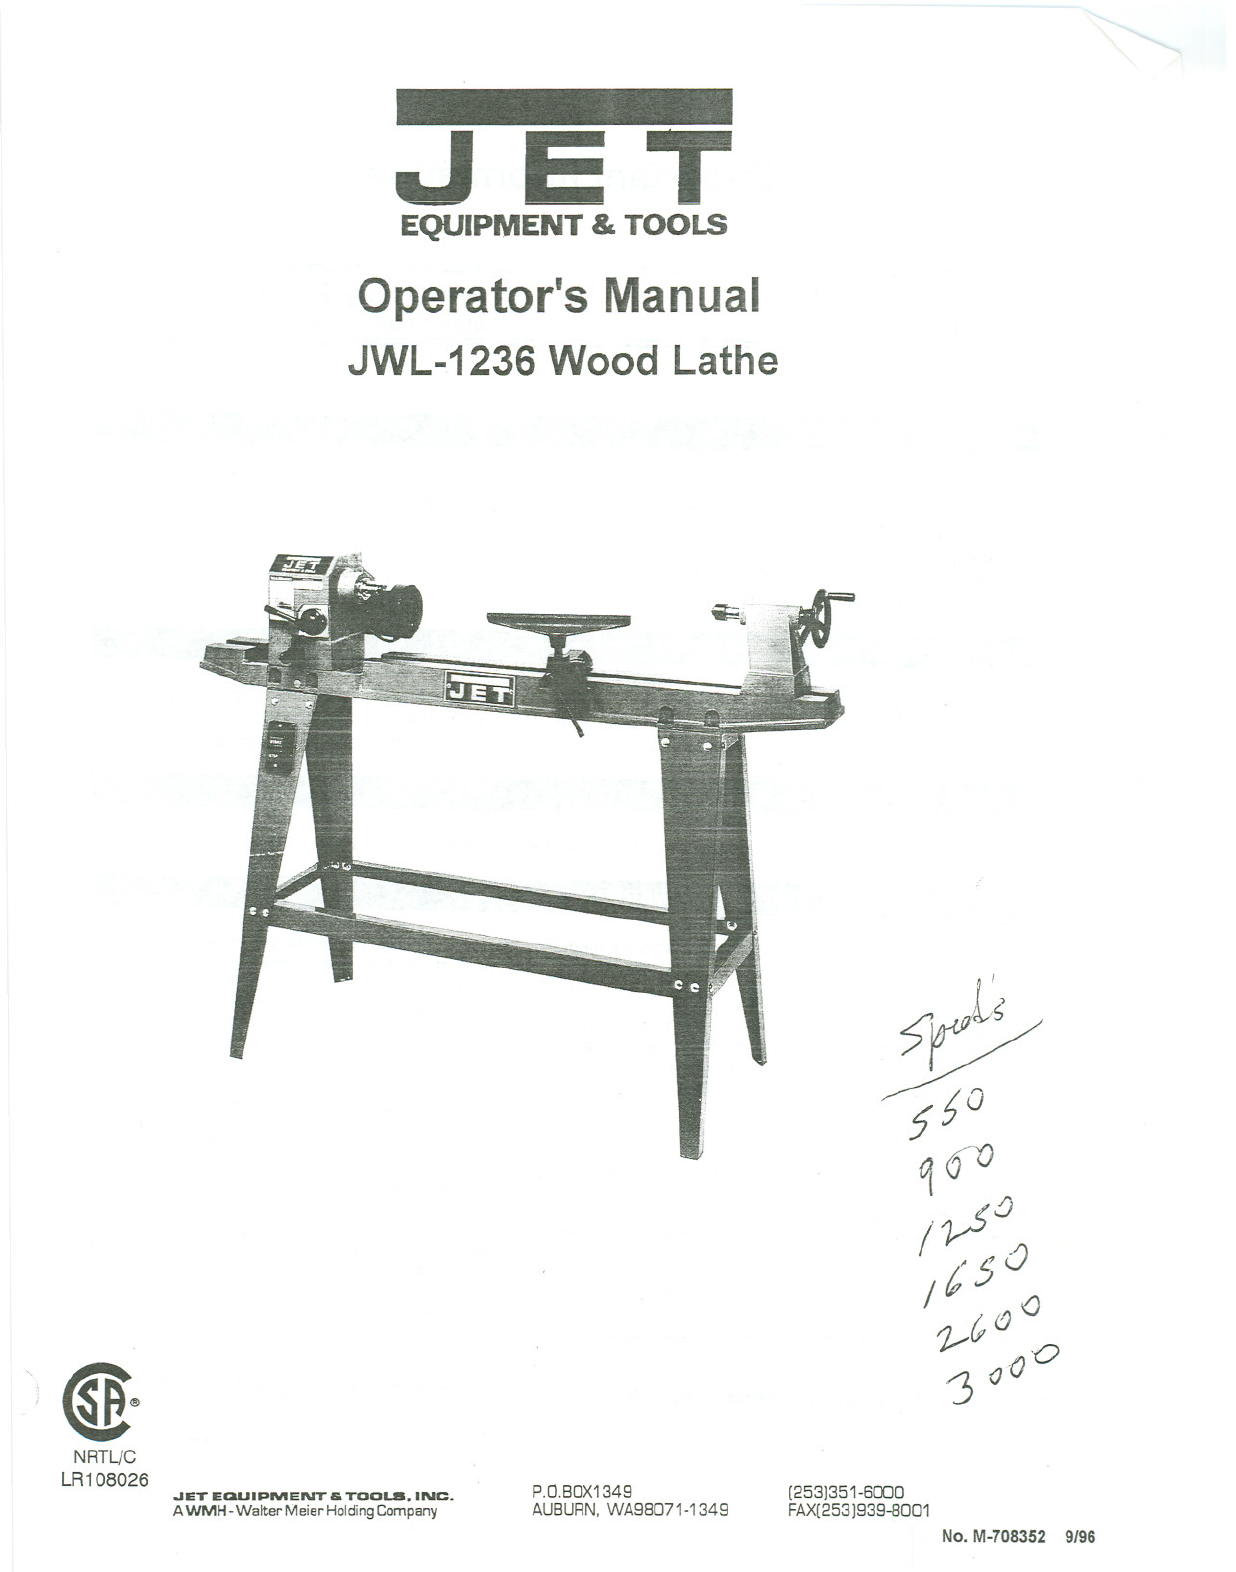 enco lathe wiring diagram south bend lathe wiring diagram 230 Single Phase Wiring Diagram Single Phase Motor Schematic